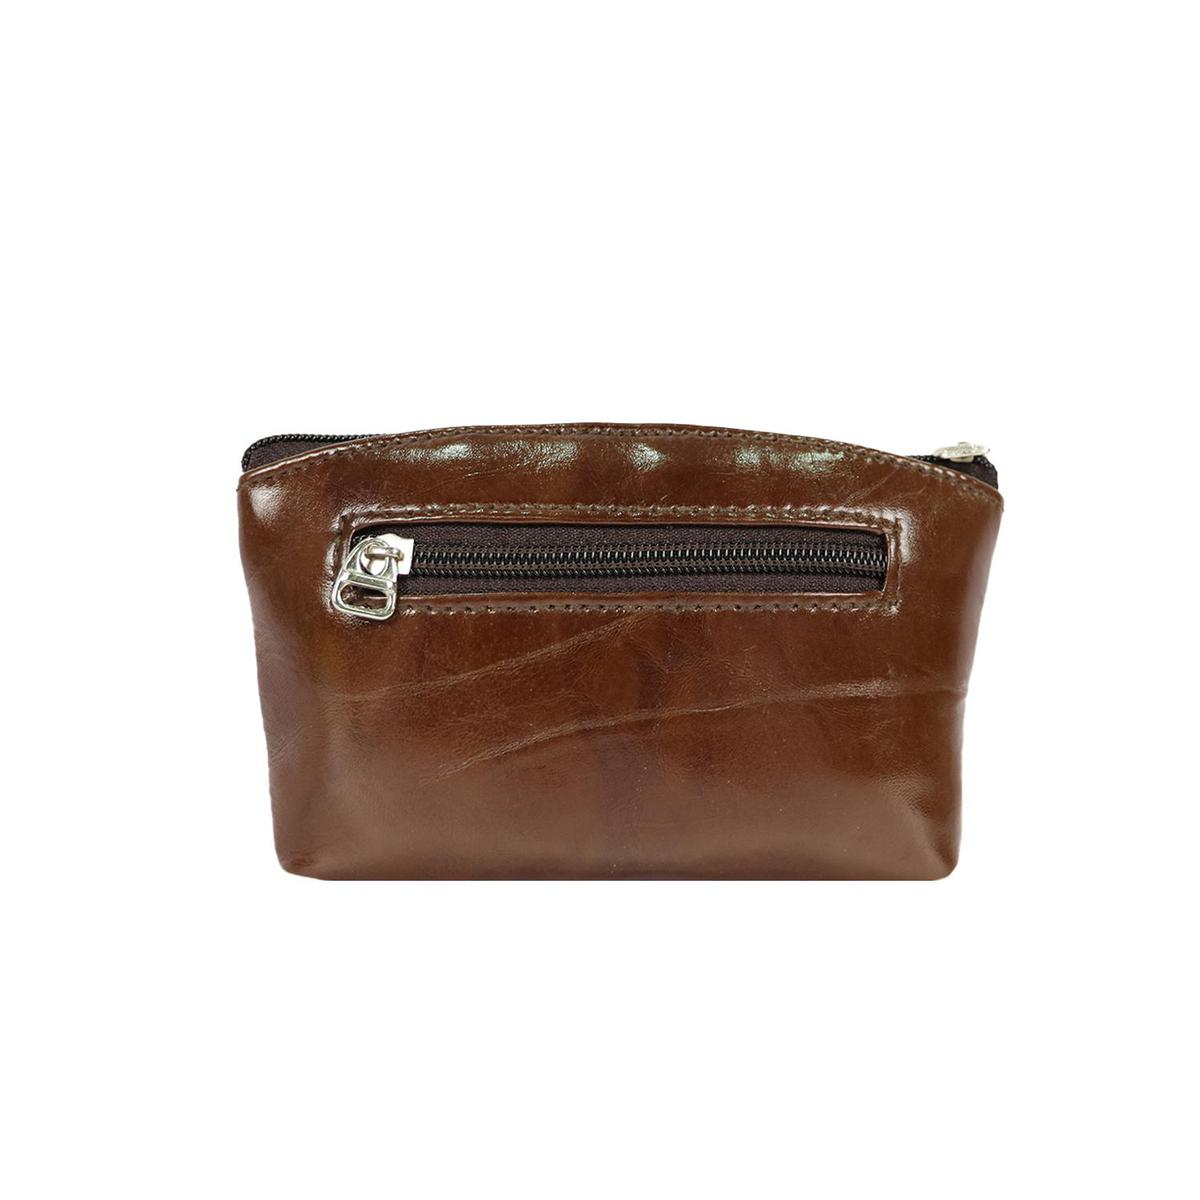 Lelys - Women's - Small Wallets For Grandmother